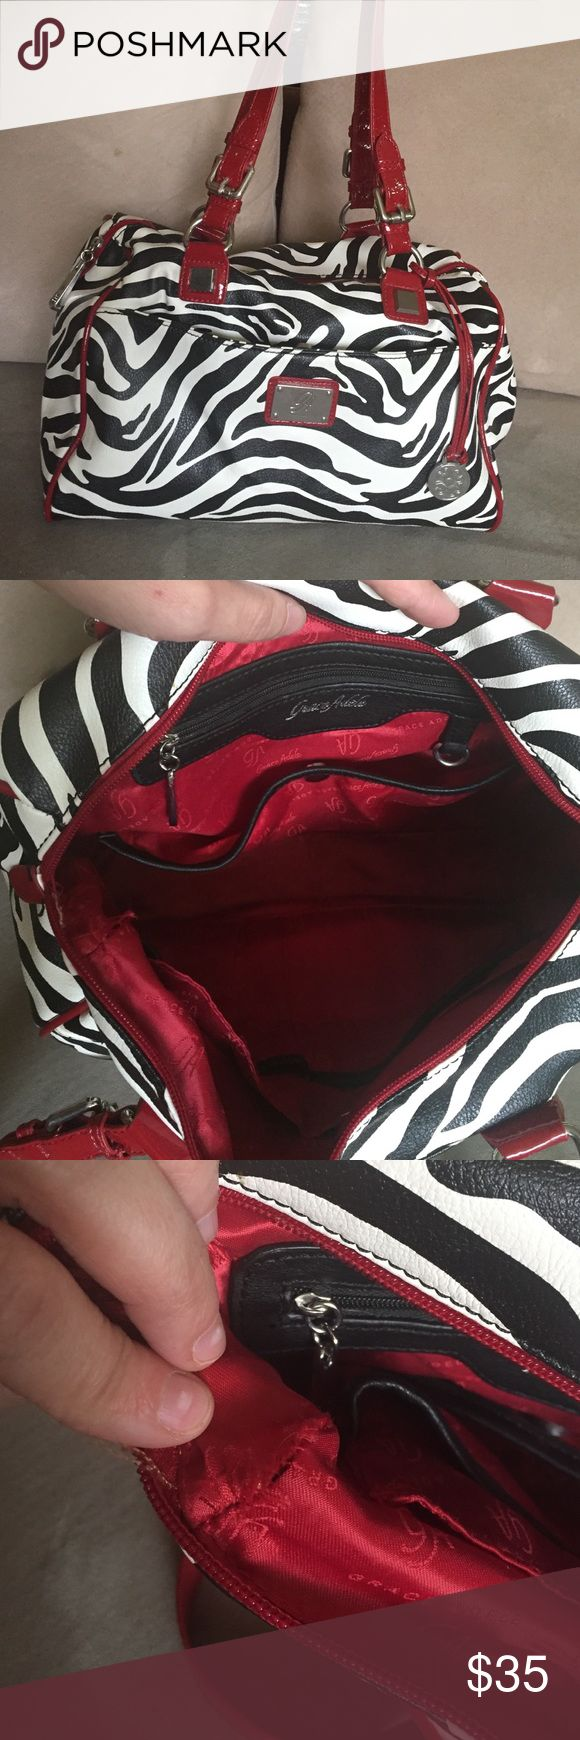 Grace Adele Zebra Stripe Purse Gorgeous and trendy Grace Adele bag. Great condition. One small seam opening on inside corner. Could repair. Smoke free home. Grace Adele Bags Satchels